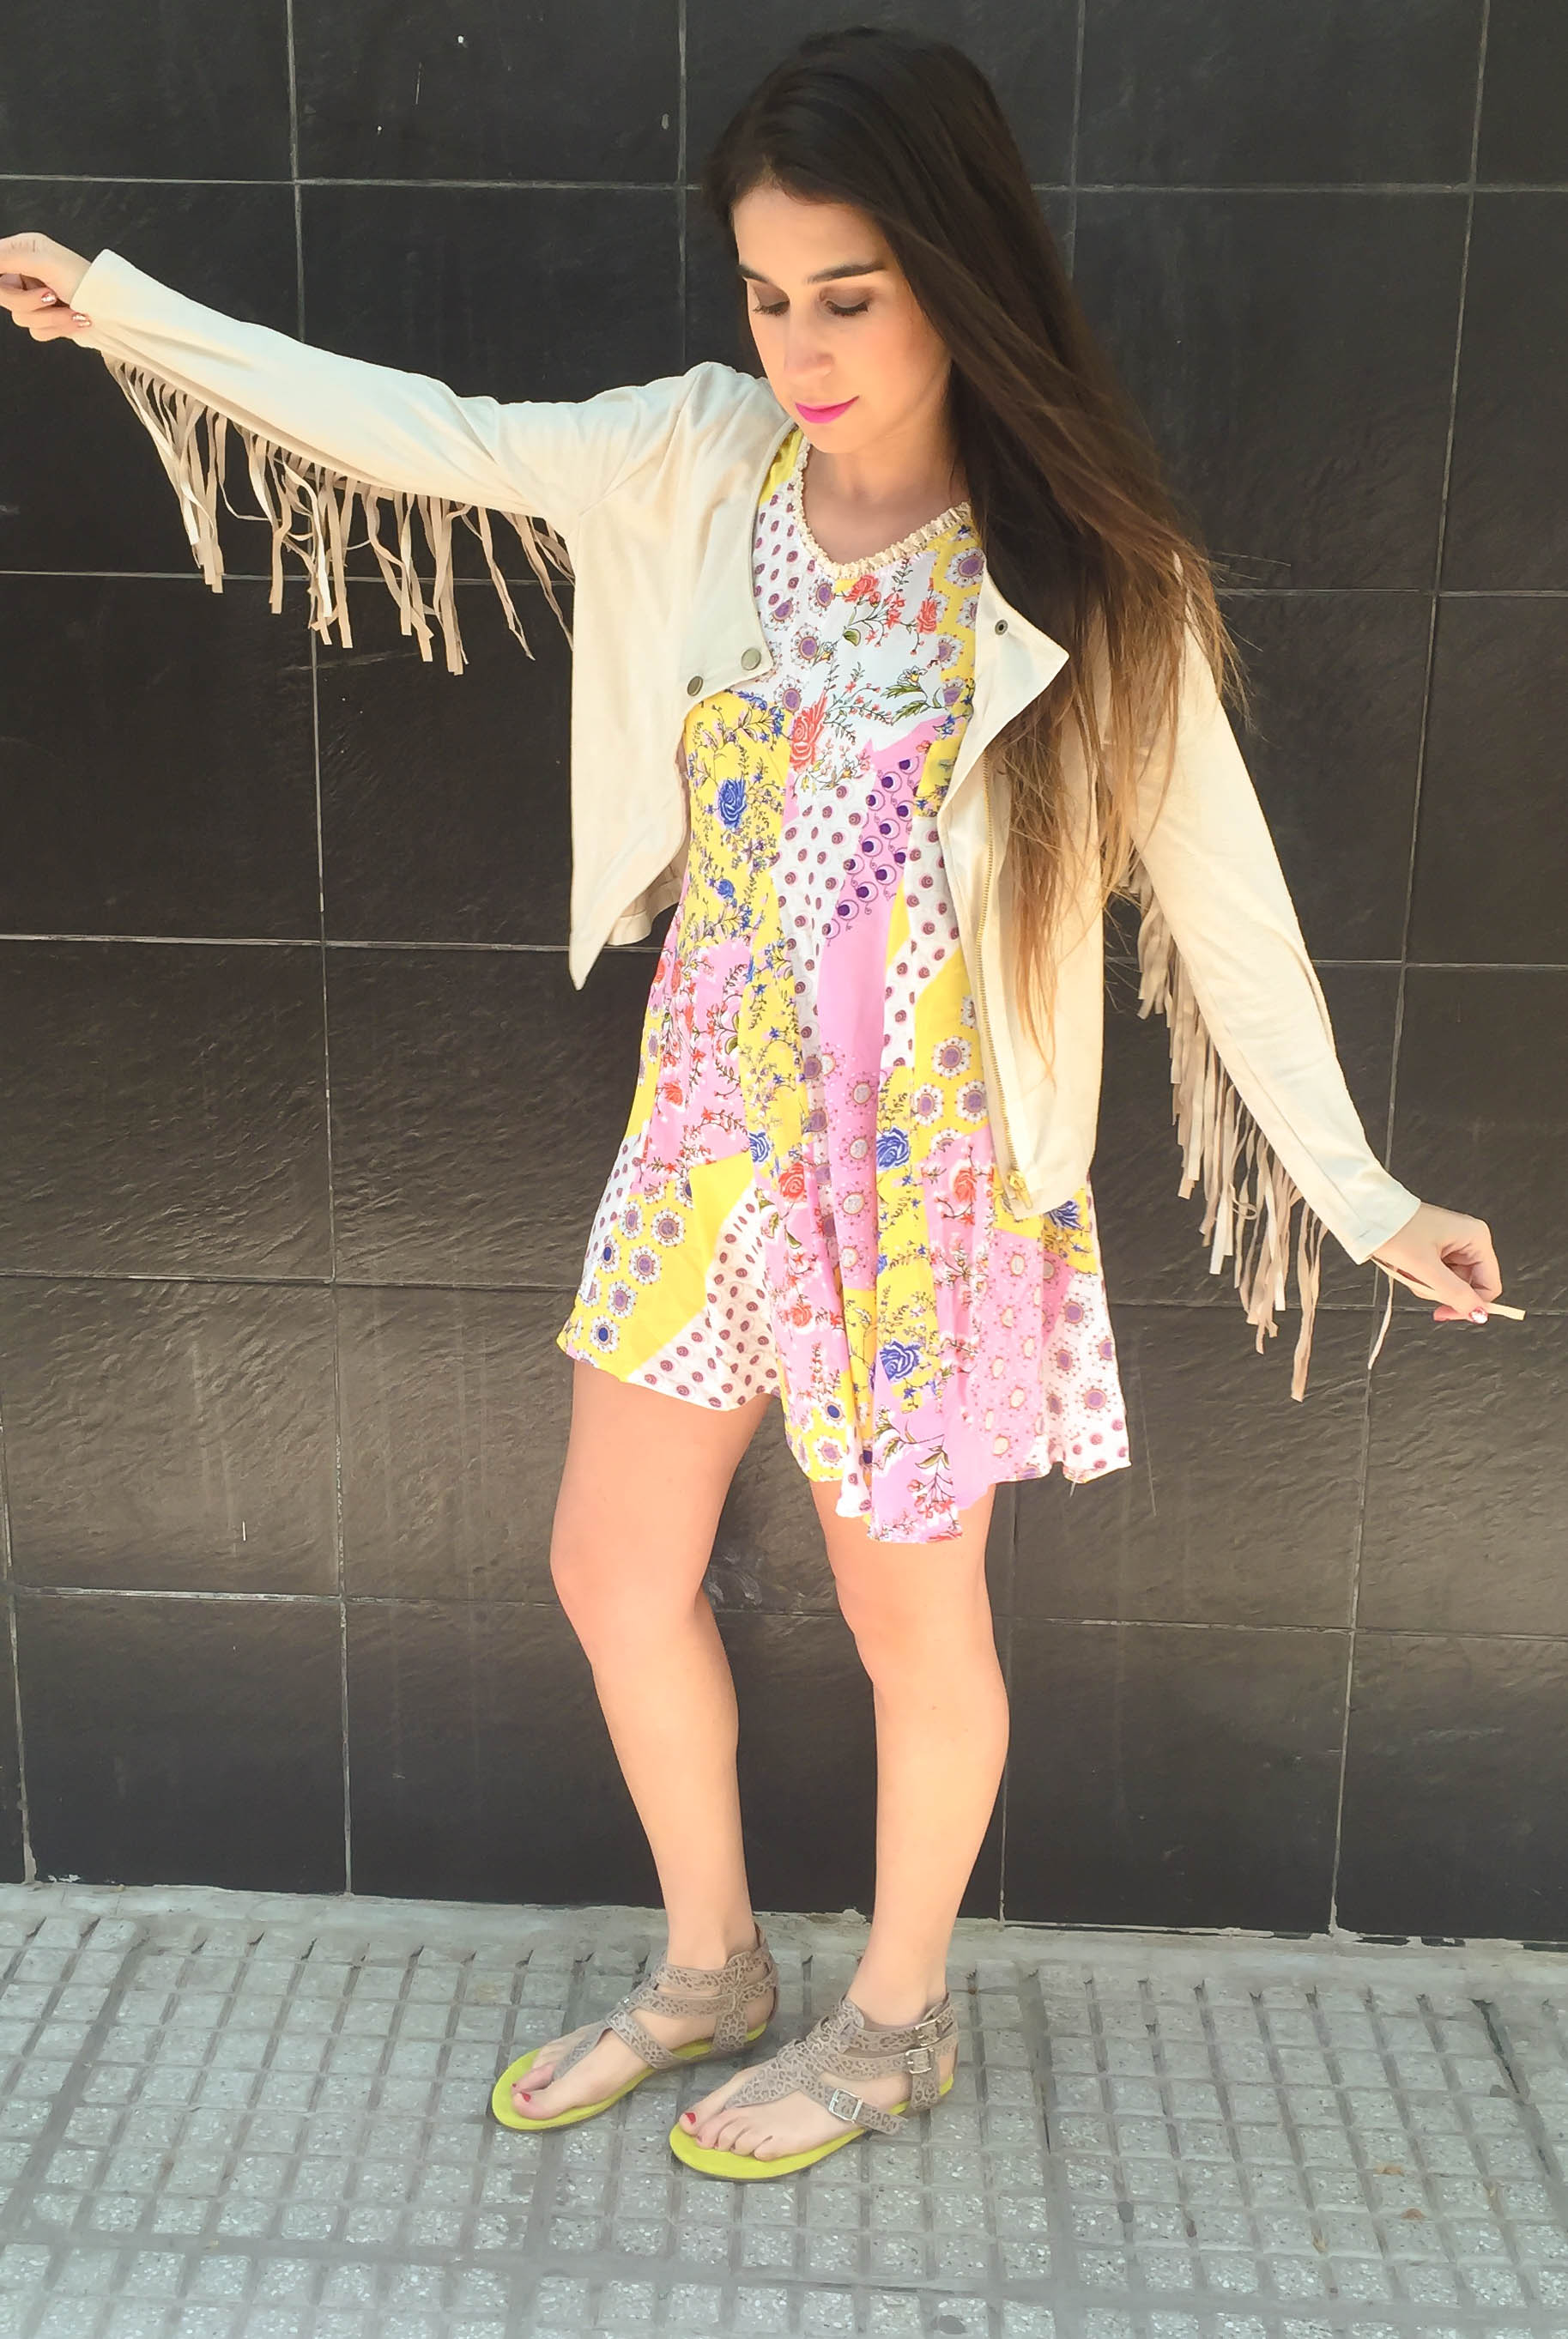 boho-spirit-fashion-diaries-6